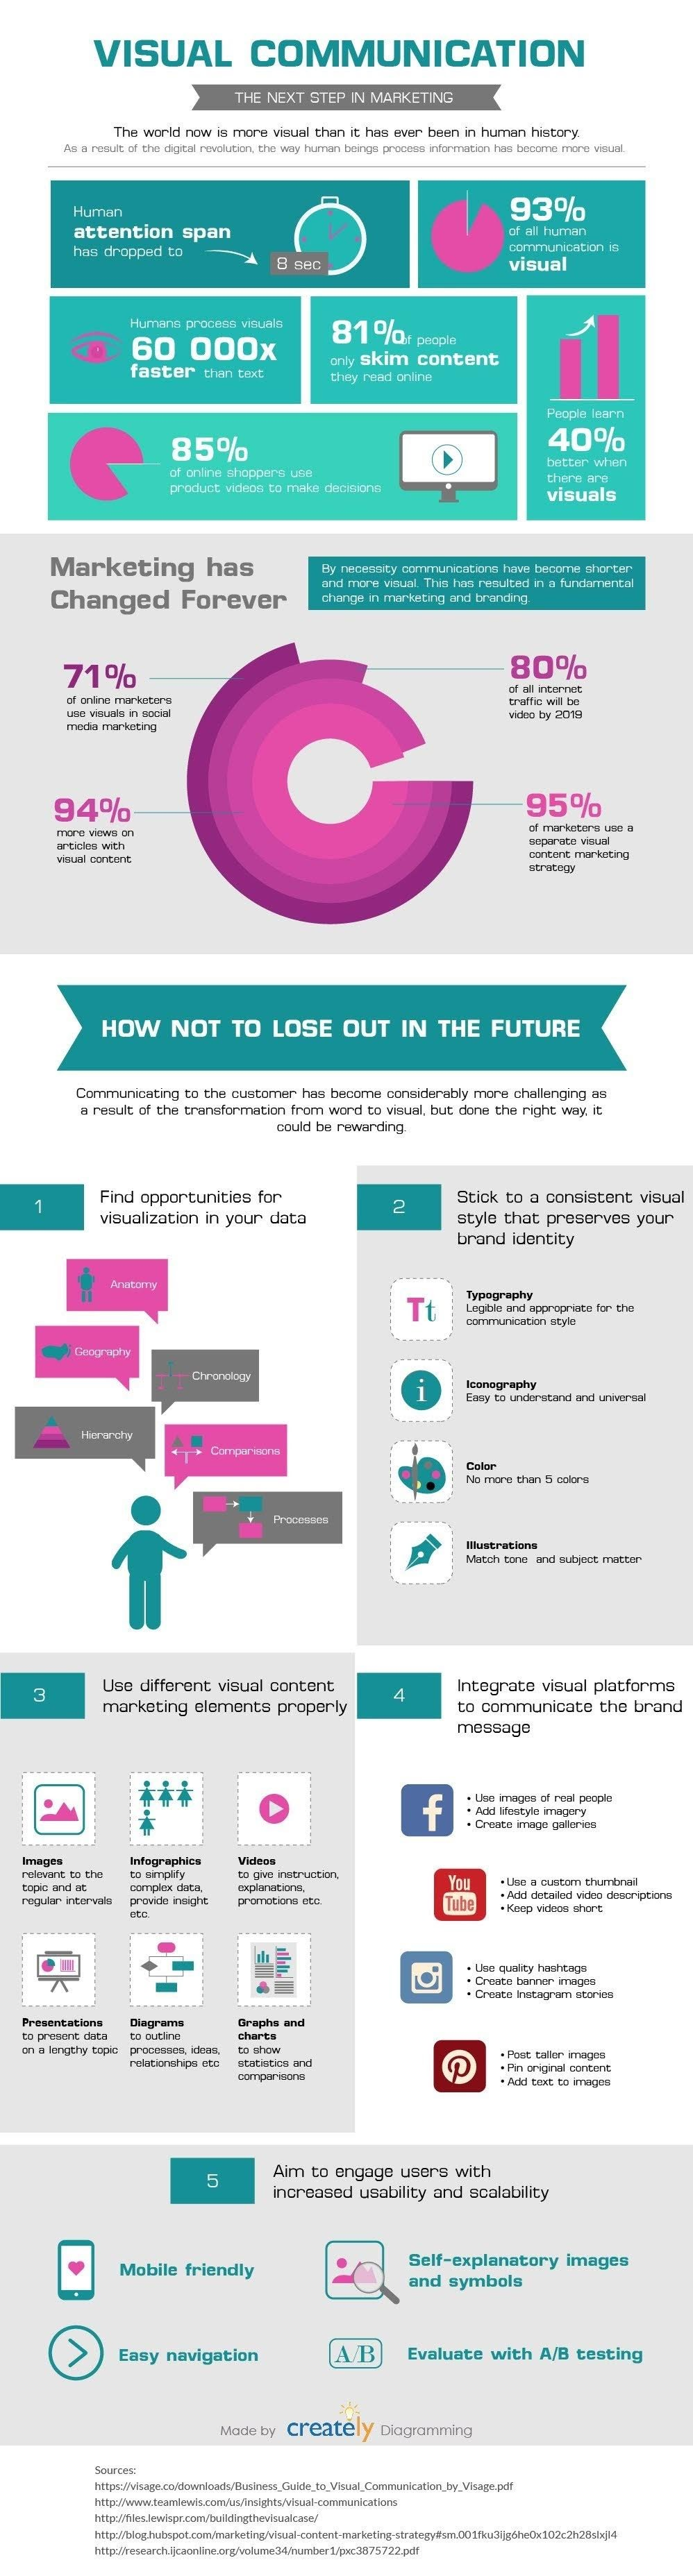 Visual Communication in Marketing: Why You Need it How to Do It #infographic